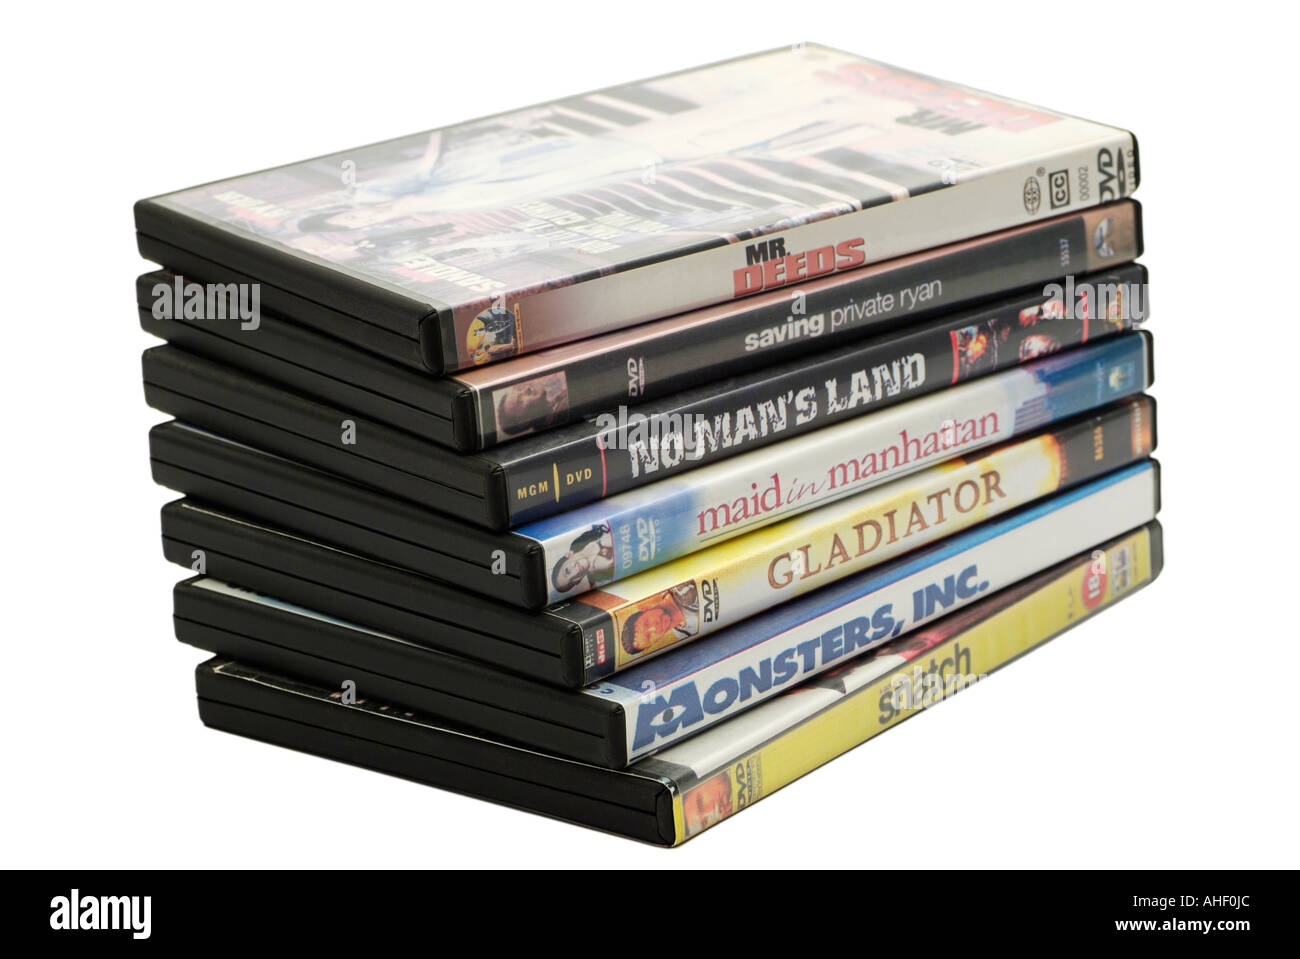 Stack of DVD Movies Against a White Background - Stock Image